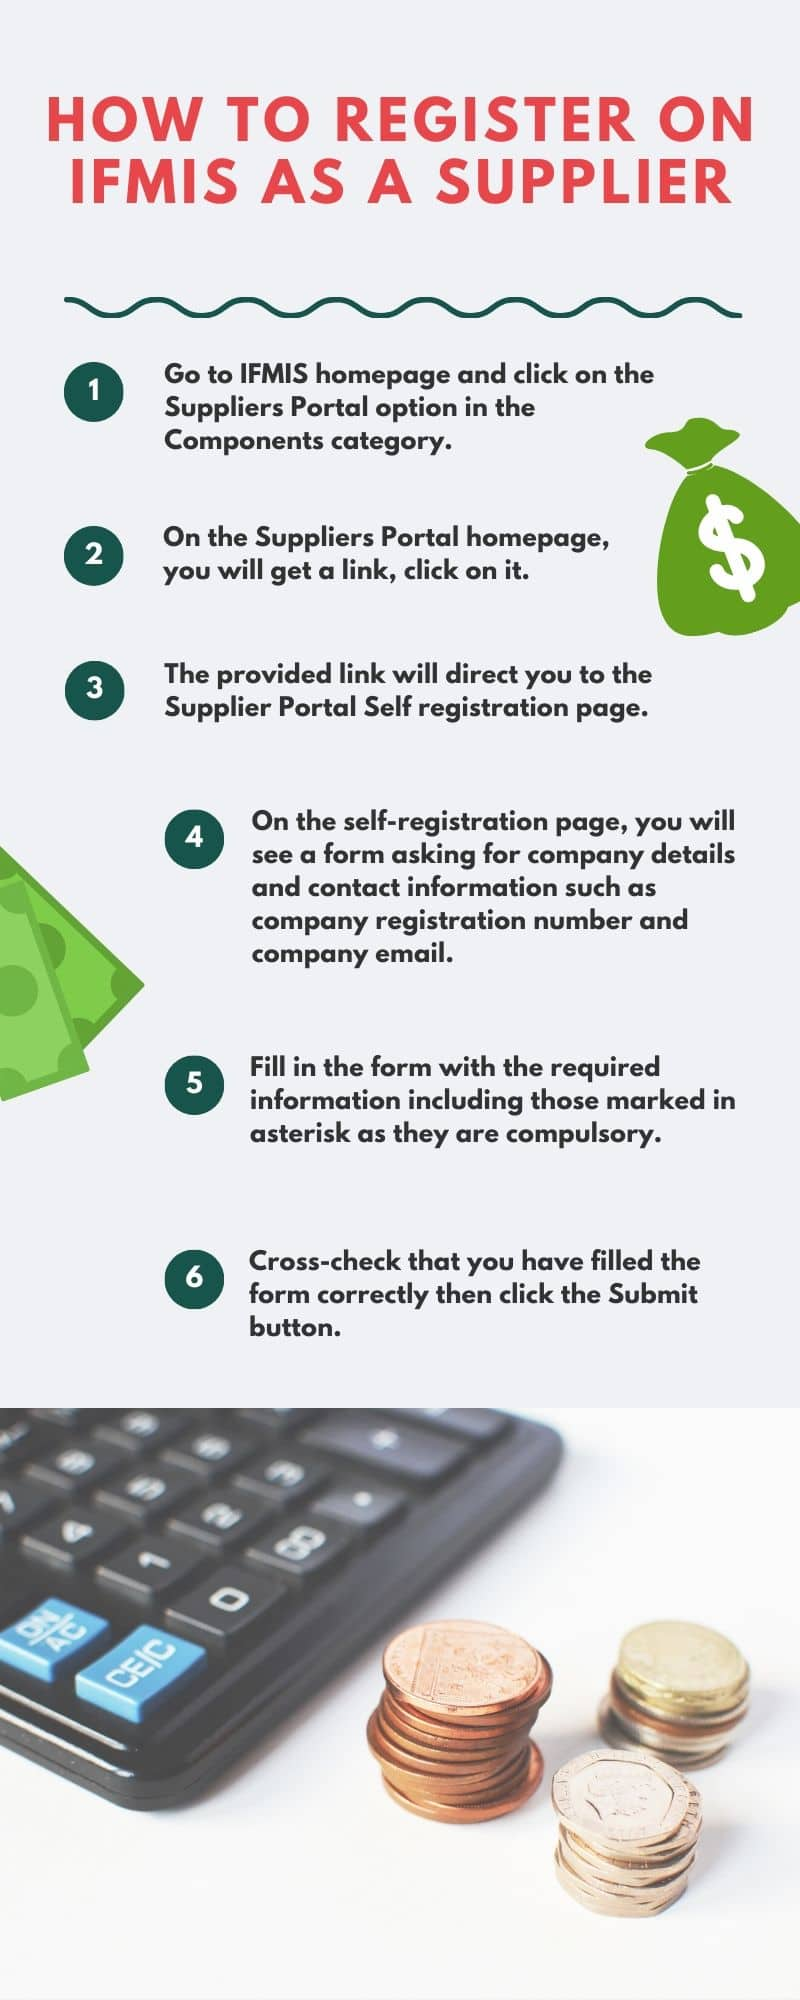 How to register on IFMIS as a supplier